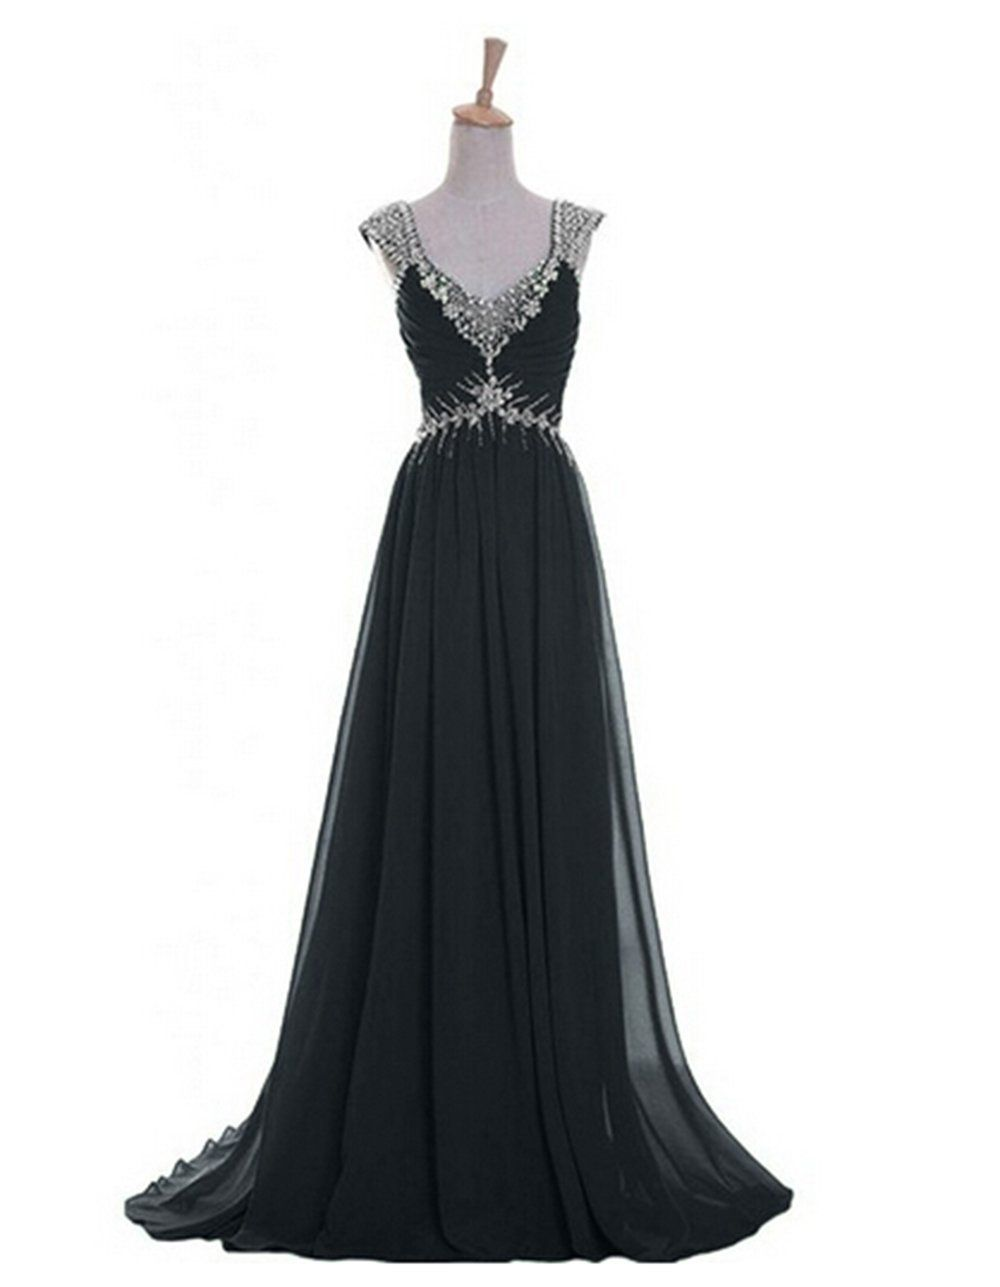 Emma y luxury vneck prom gowns party dresses chiffon long us